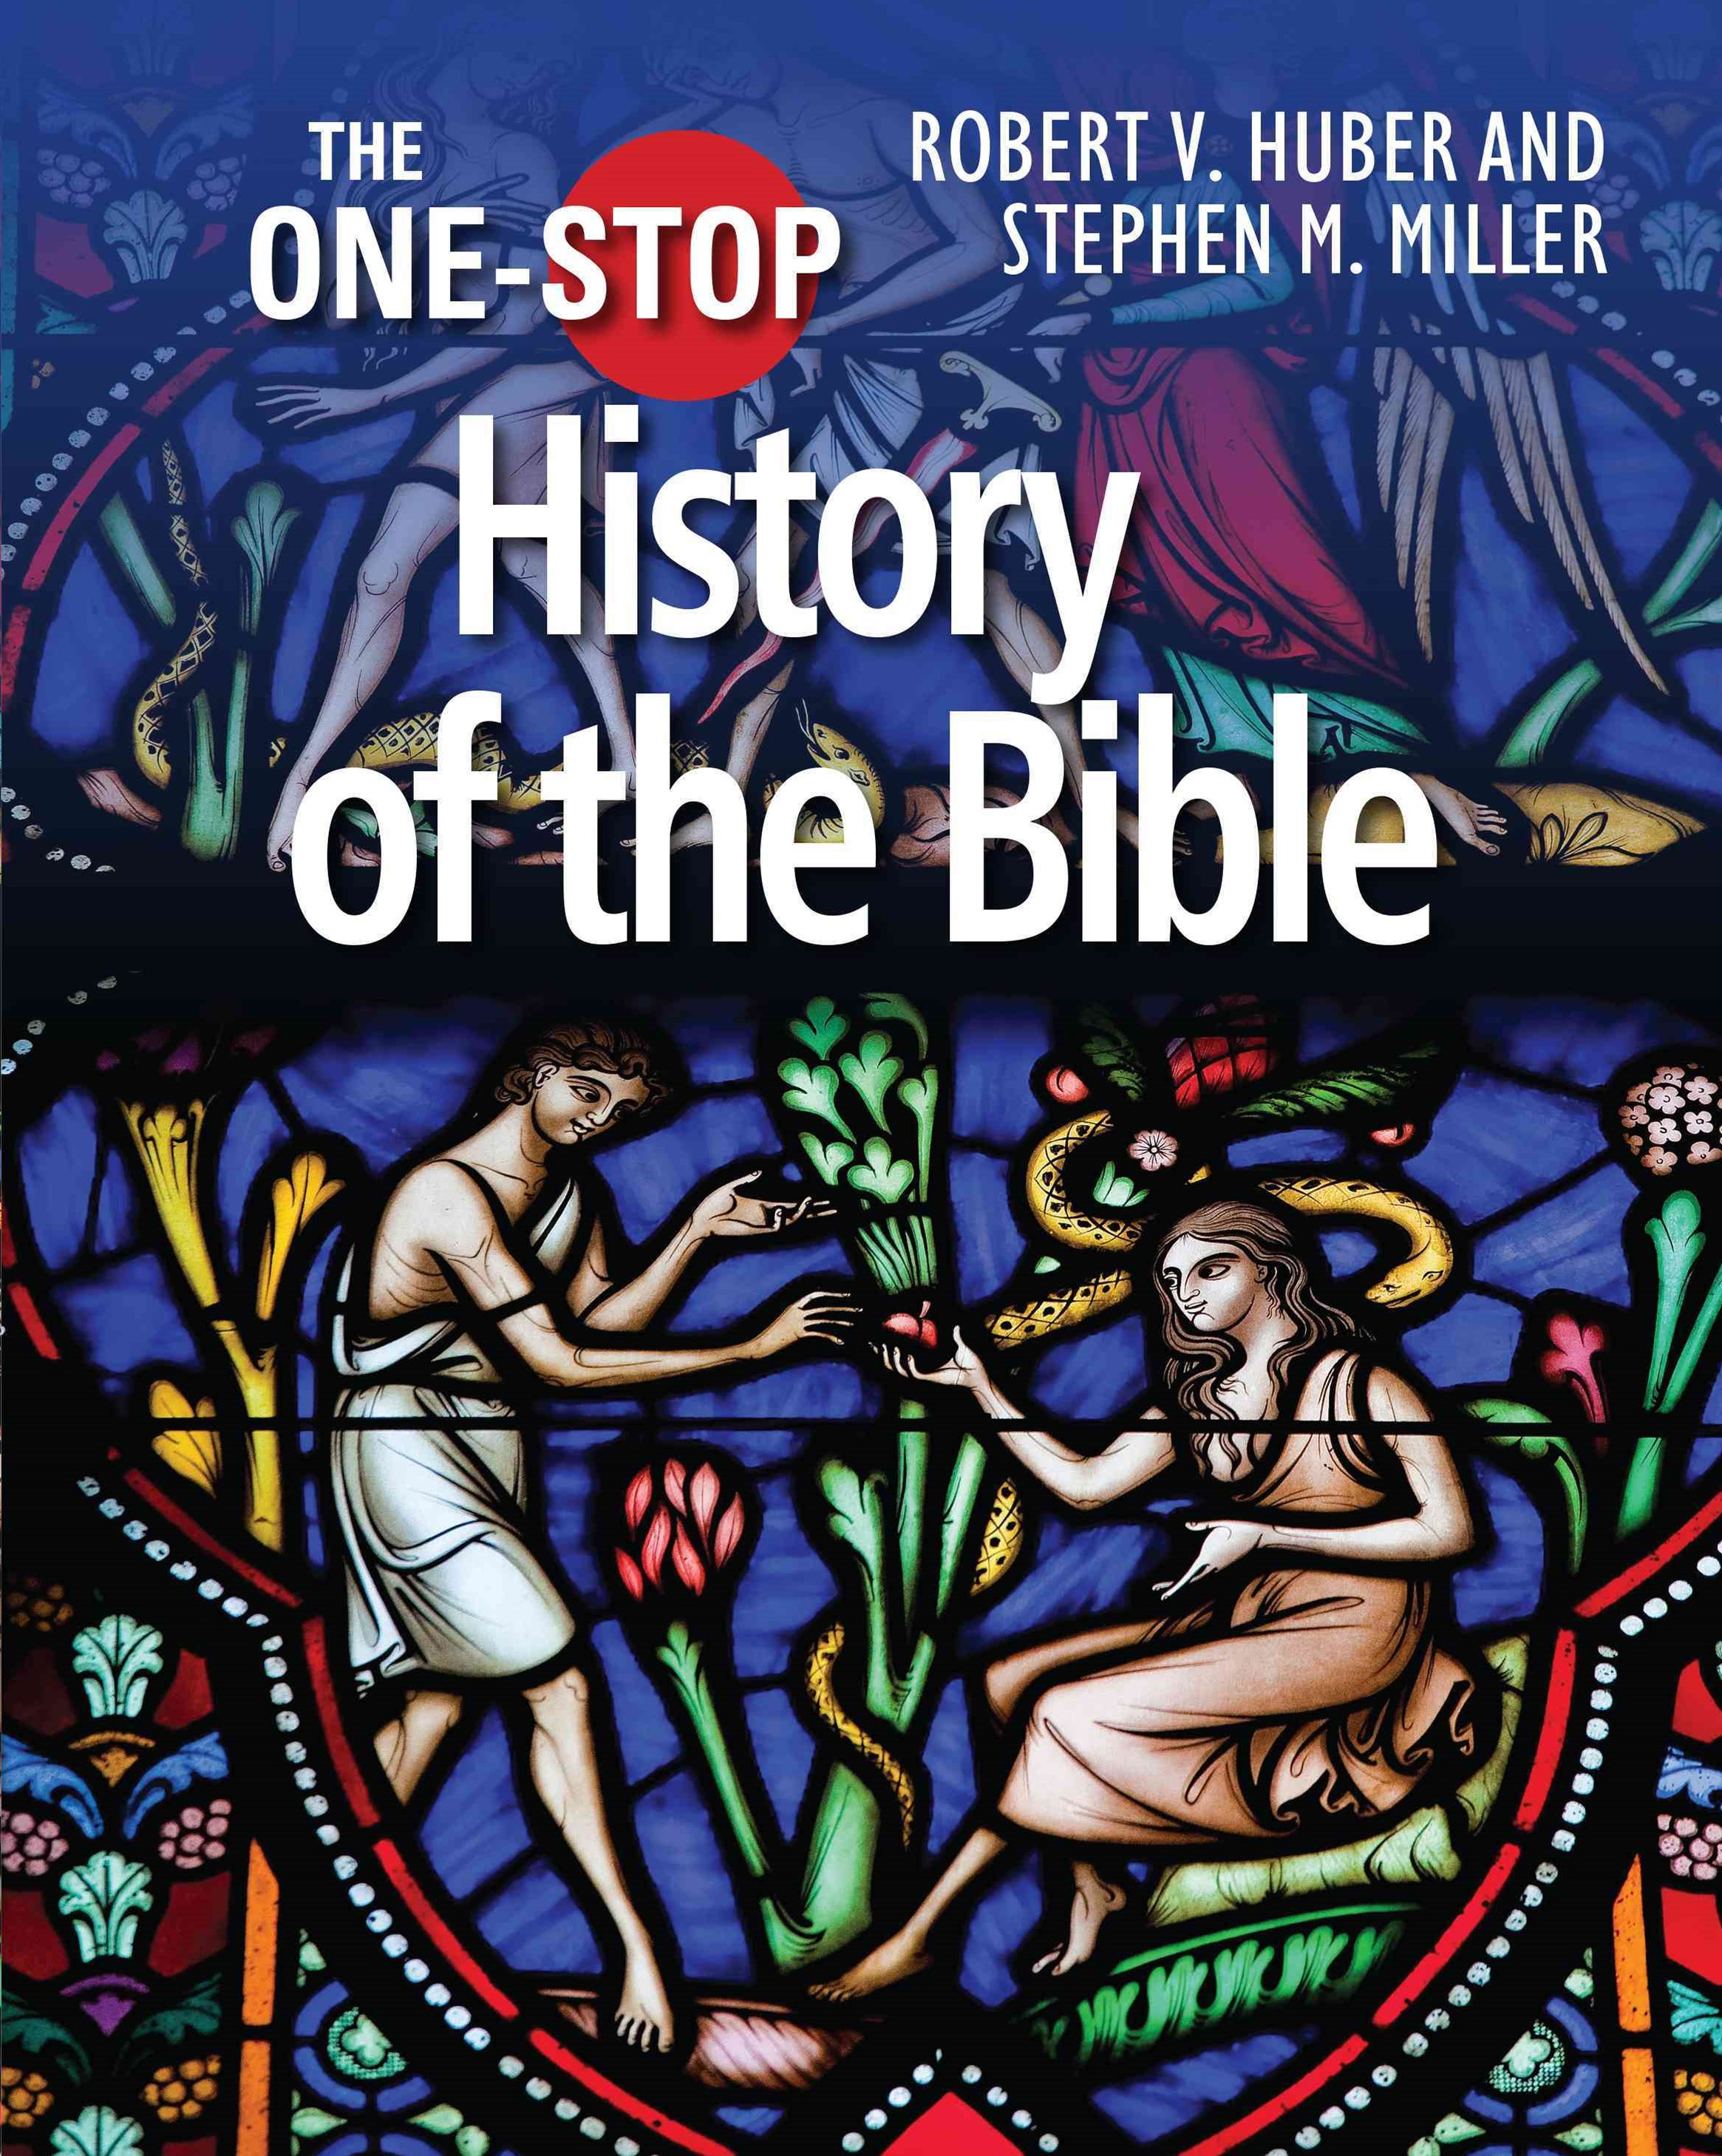 One-Stop History of the Bible